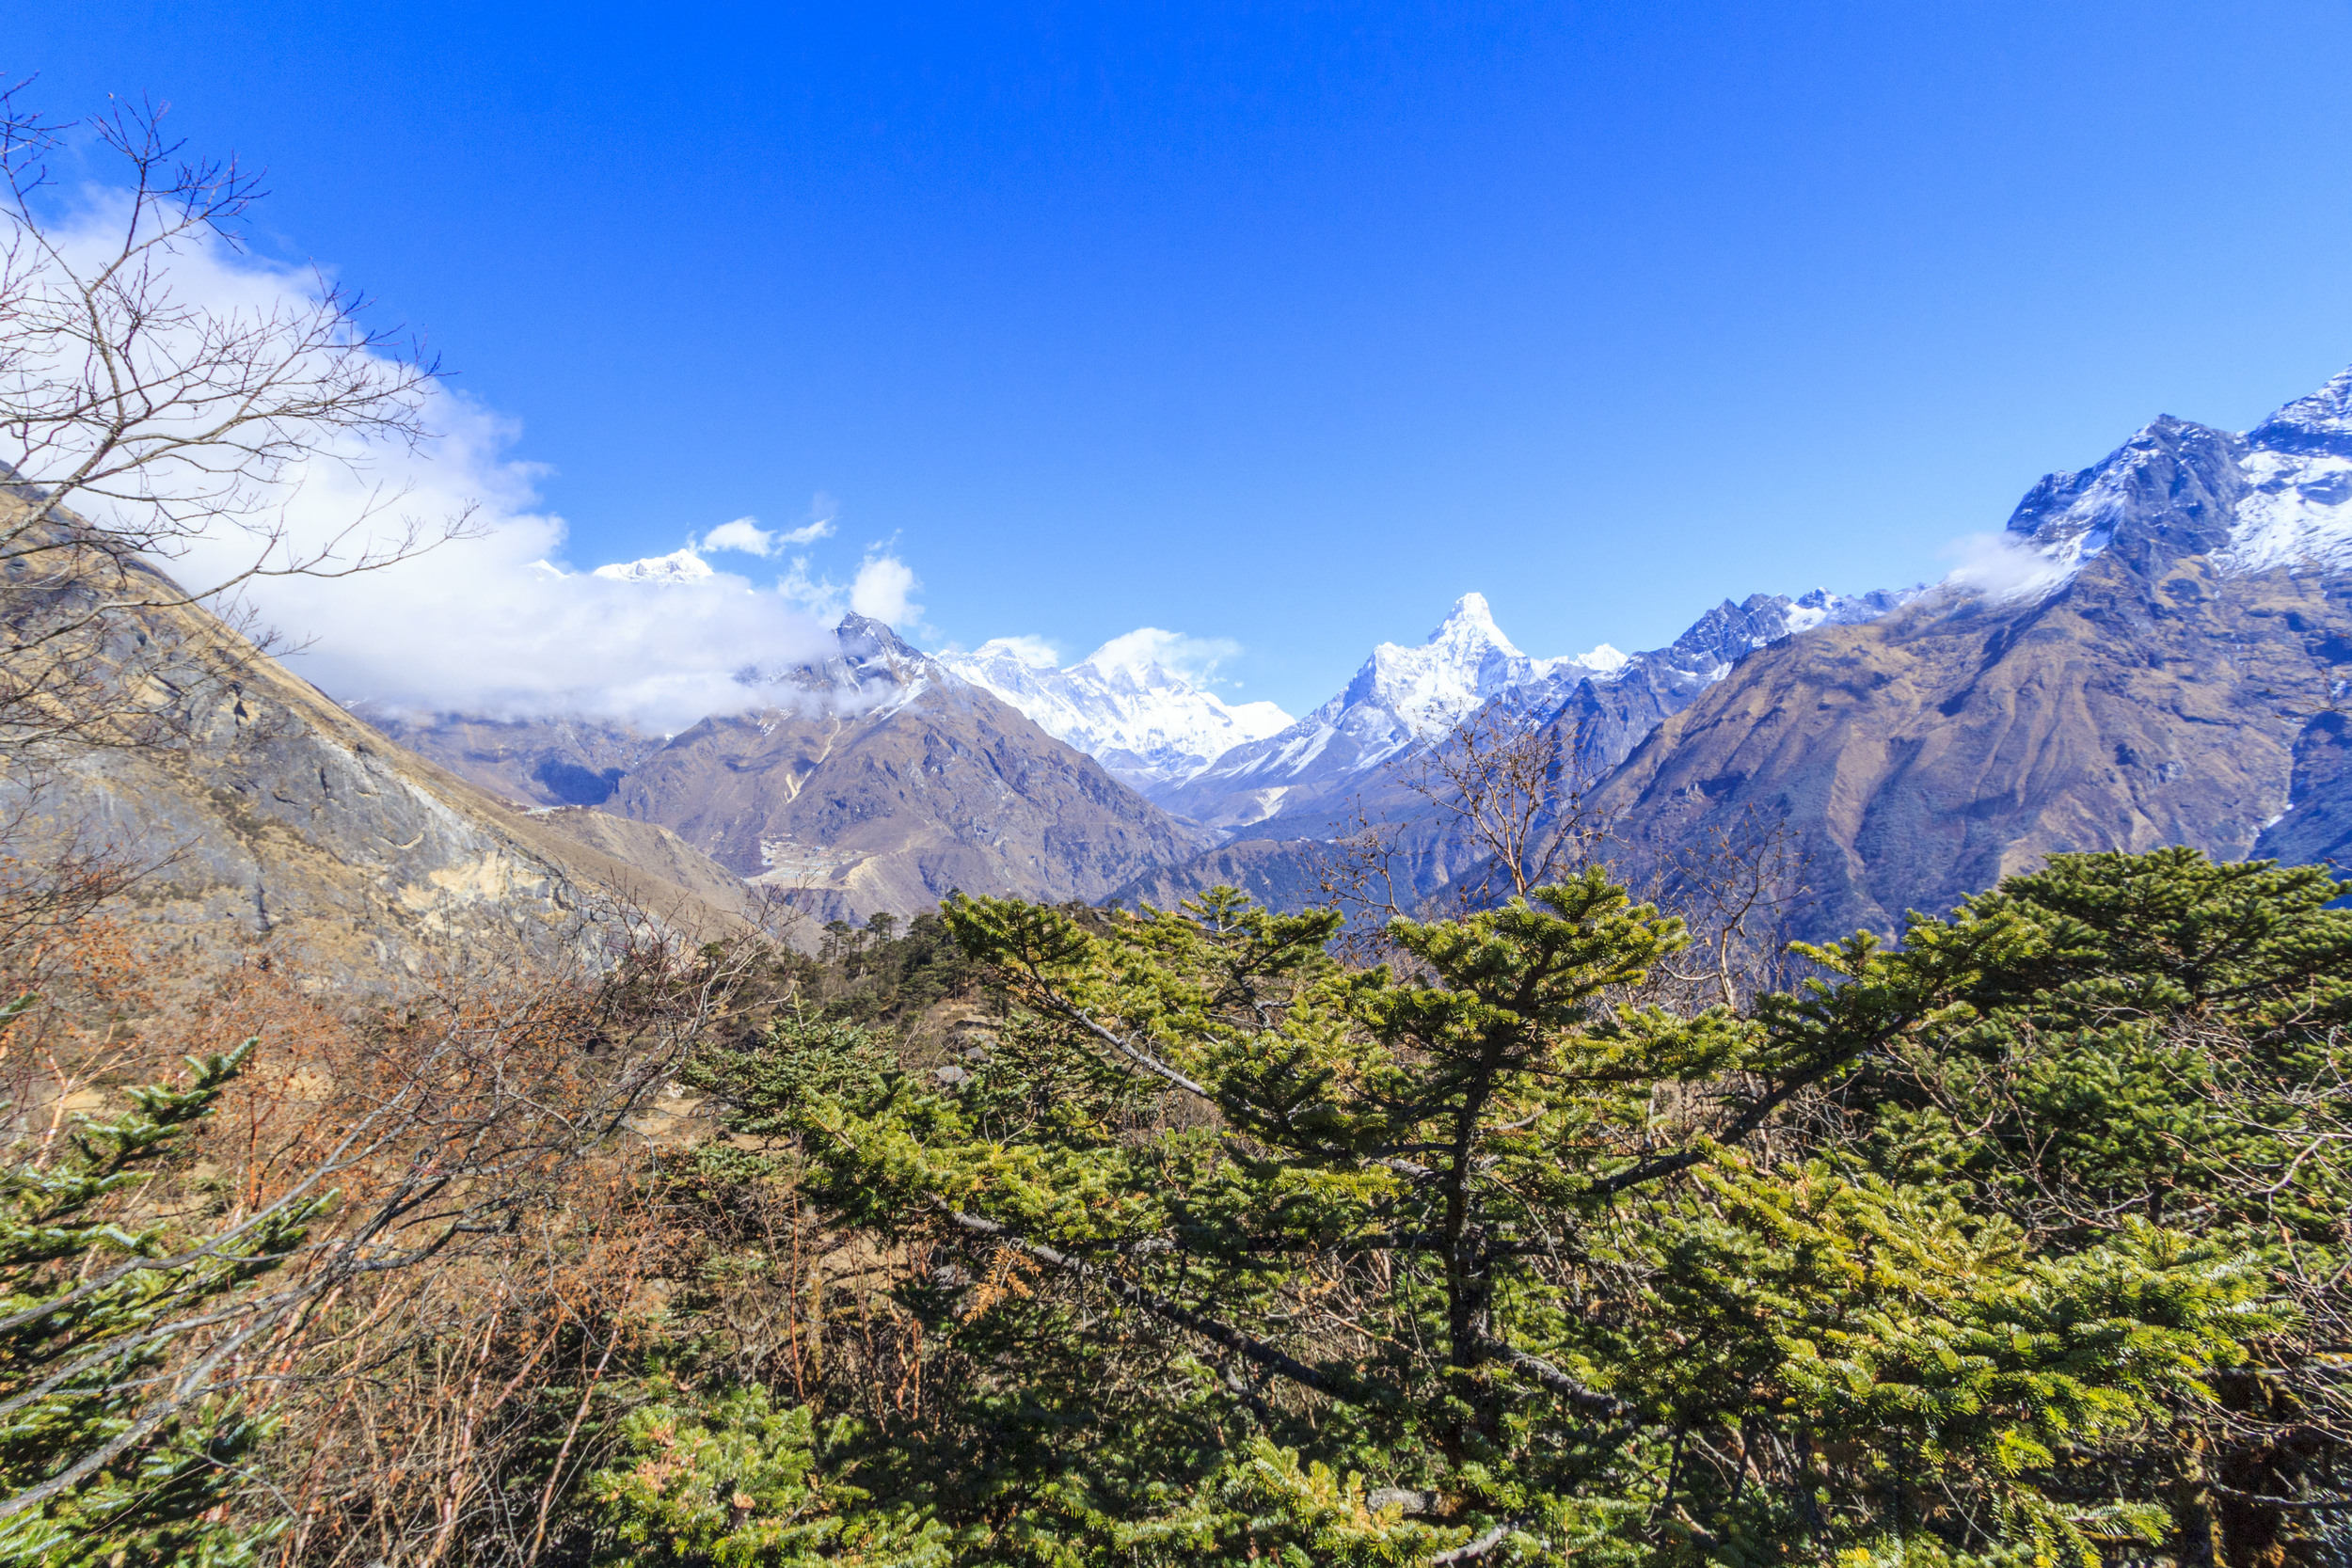 In the end of this valley. Dingboche 4200m.